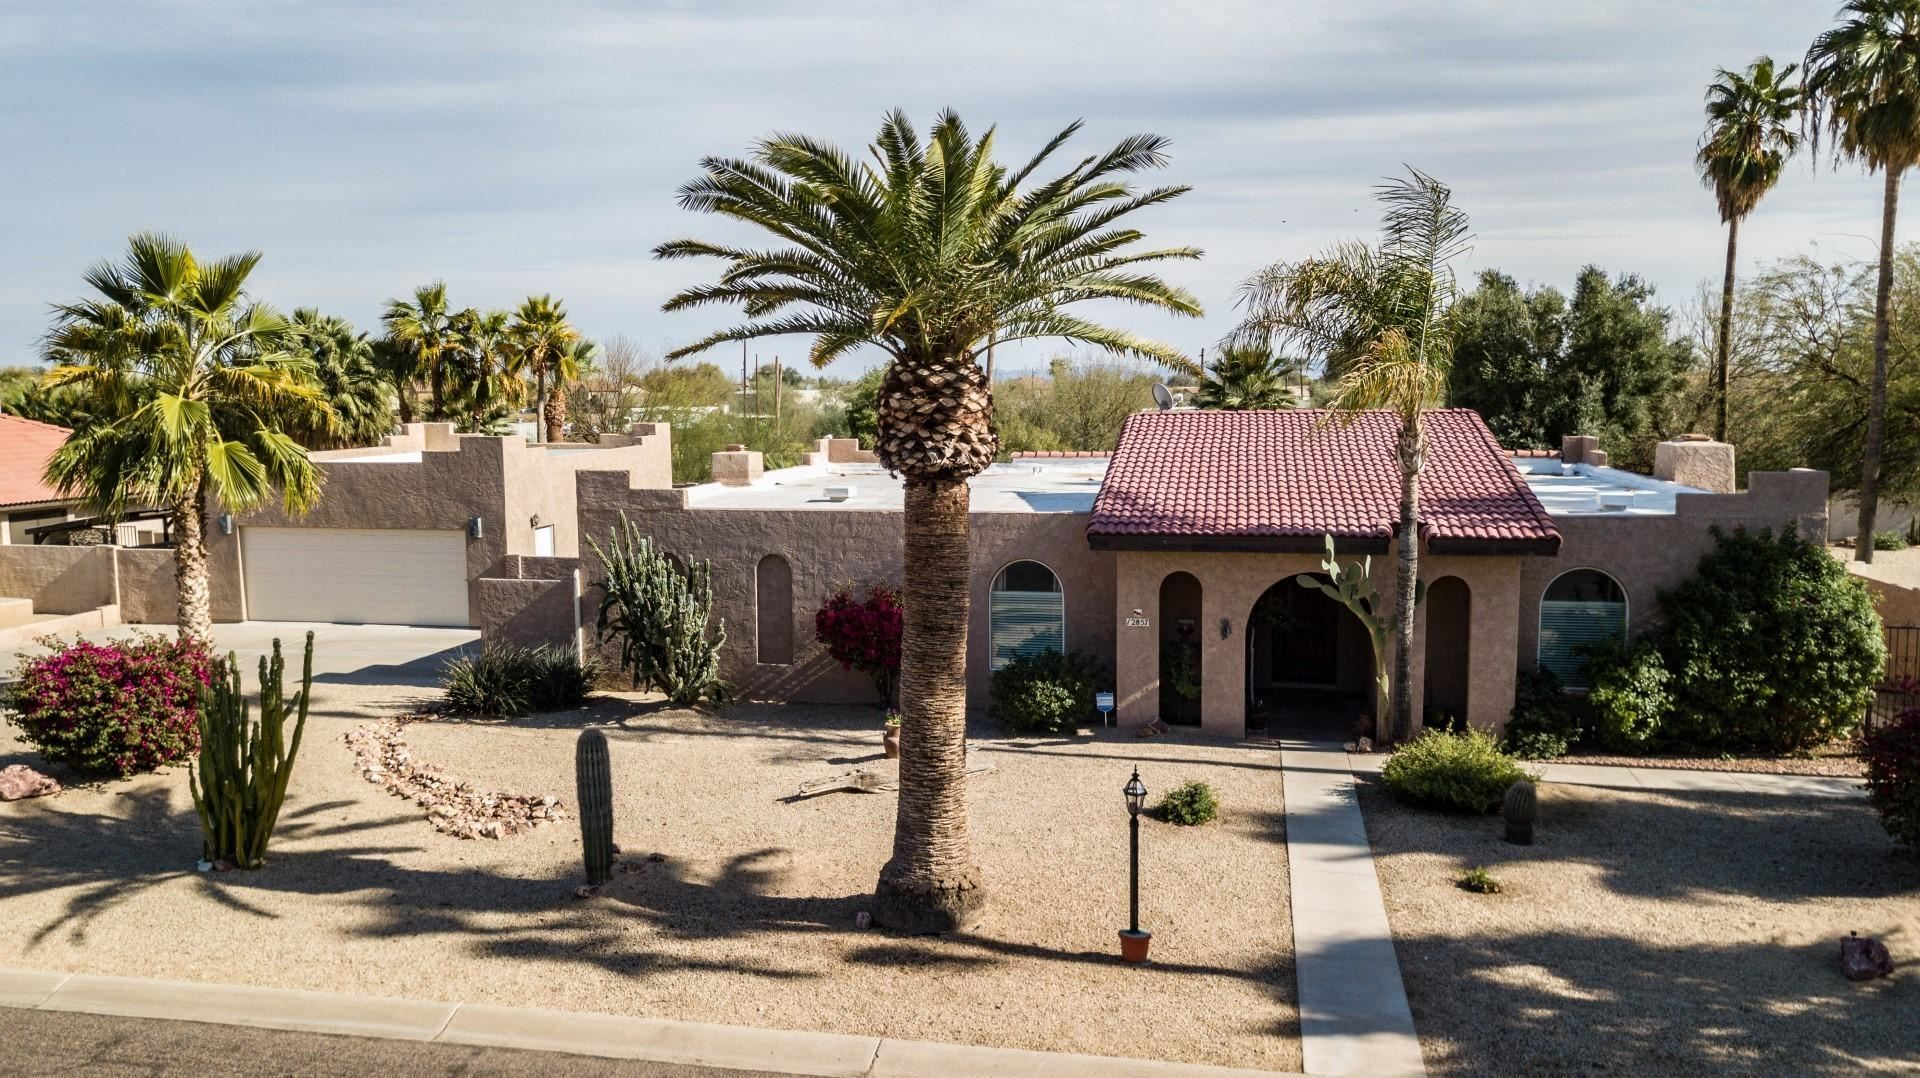 Photo of 12857 W PASADENA Avenue, Litchfield Park, AZ 85340 (MLS # 6230931)